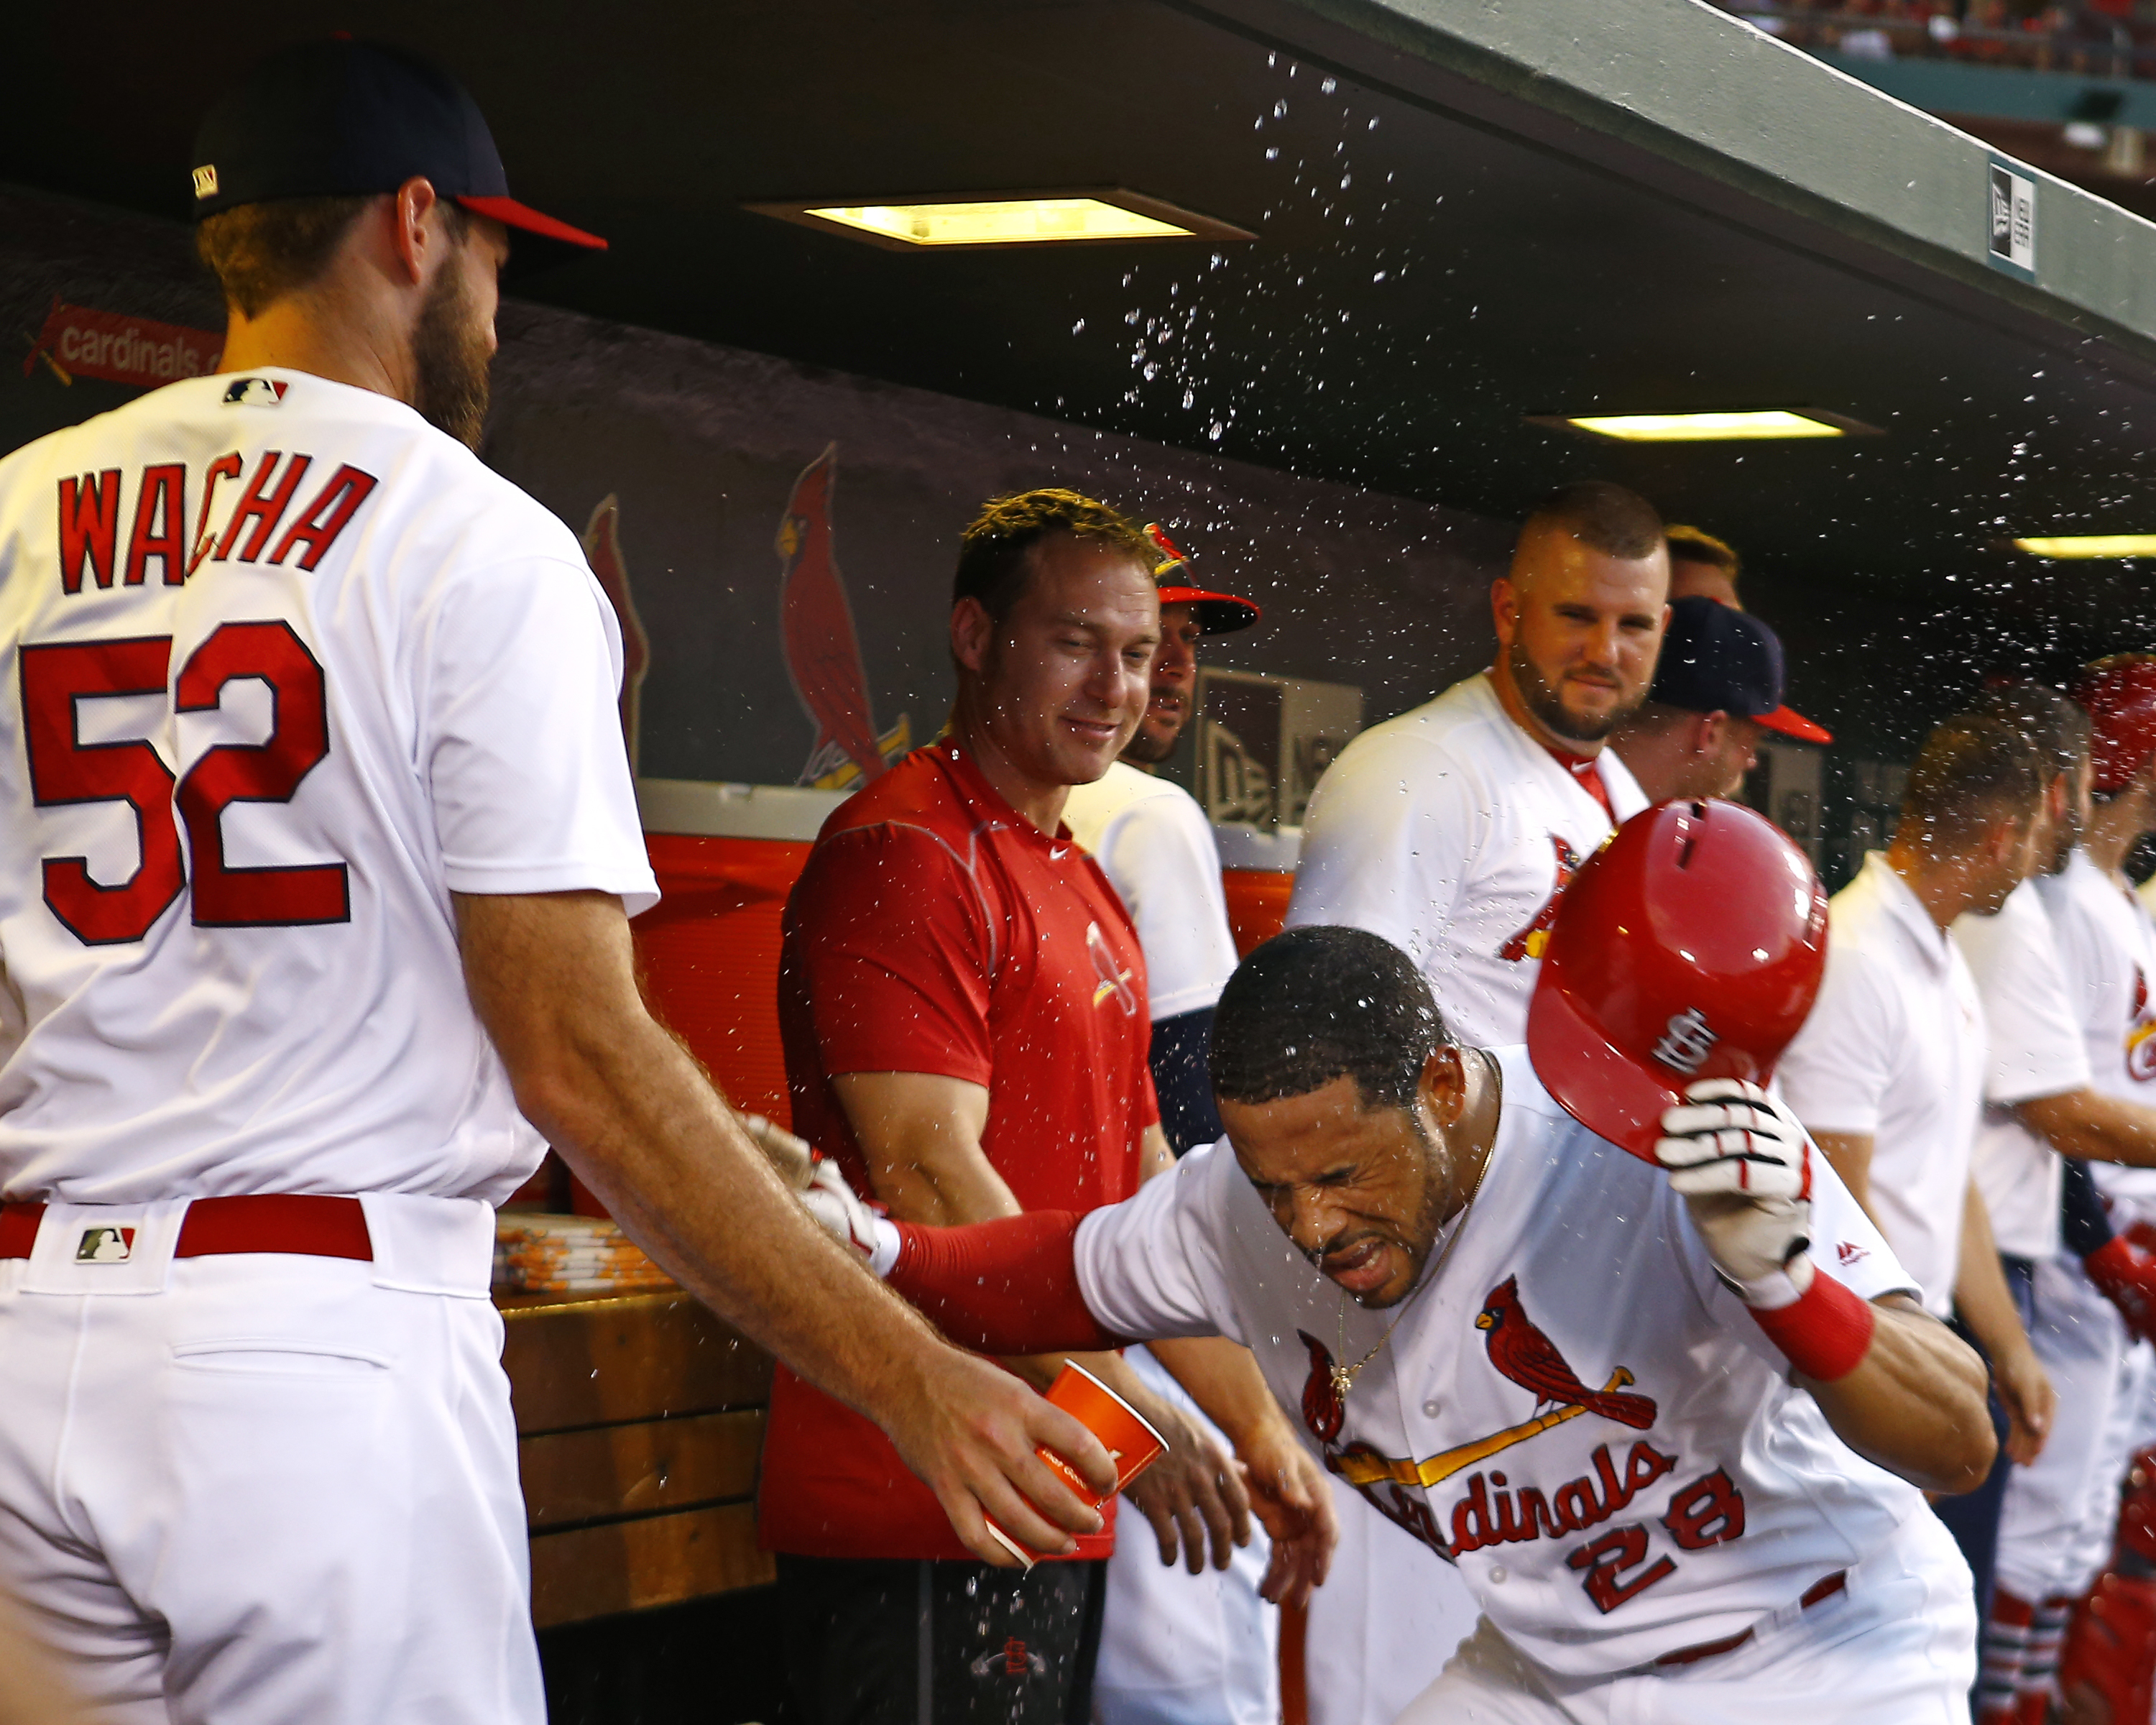 St. Louis Cardinals' Tommy Pham, right, is splashed with water by Michael Wacha after hitting a two-run home run off of Los Angeles Dodgers starting pitcher Scott Kazmir during the second inning of a baseball game Sunday, July 24, 2016, in St. Louis. (AP